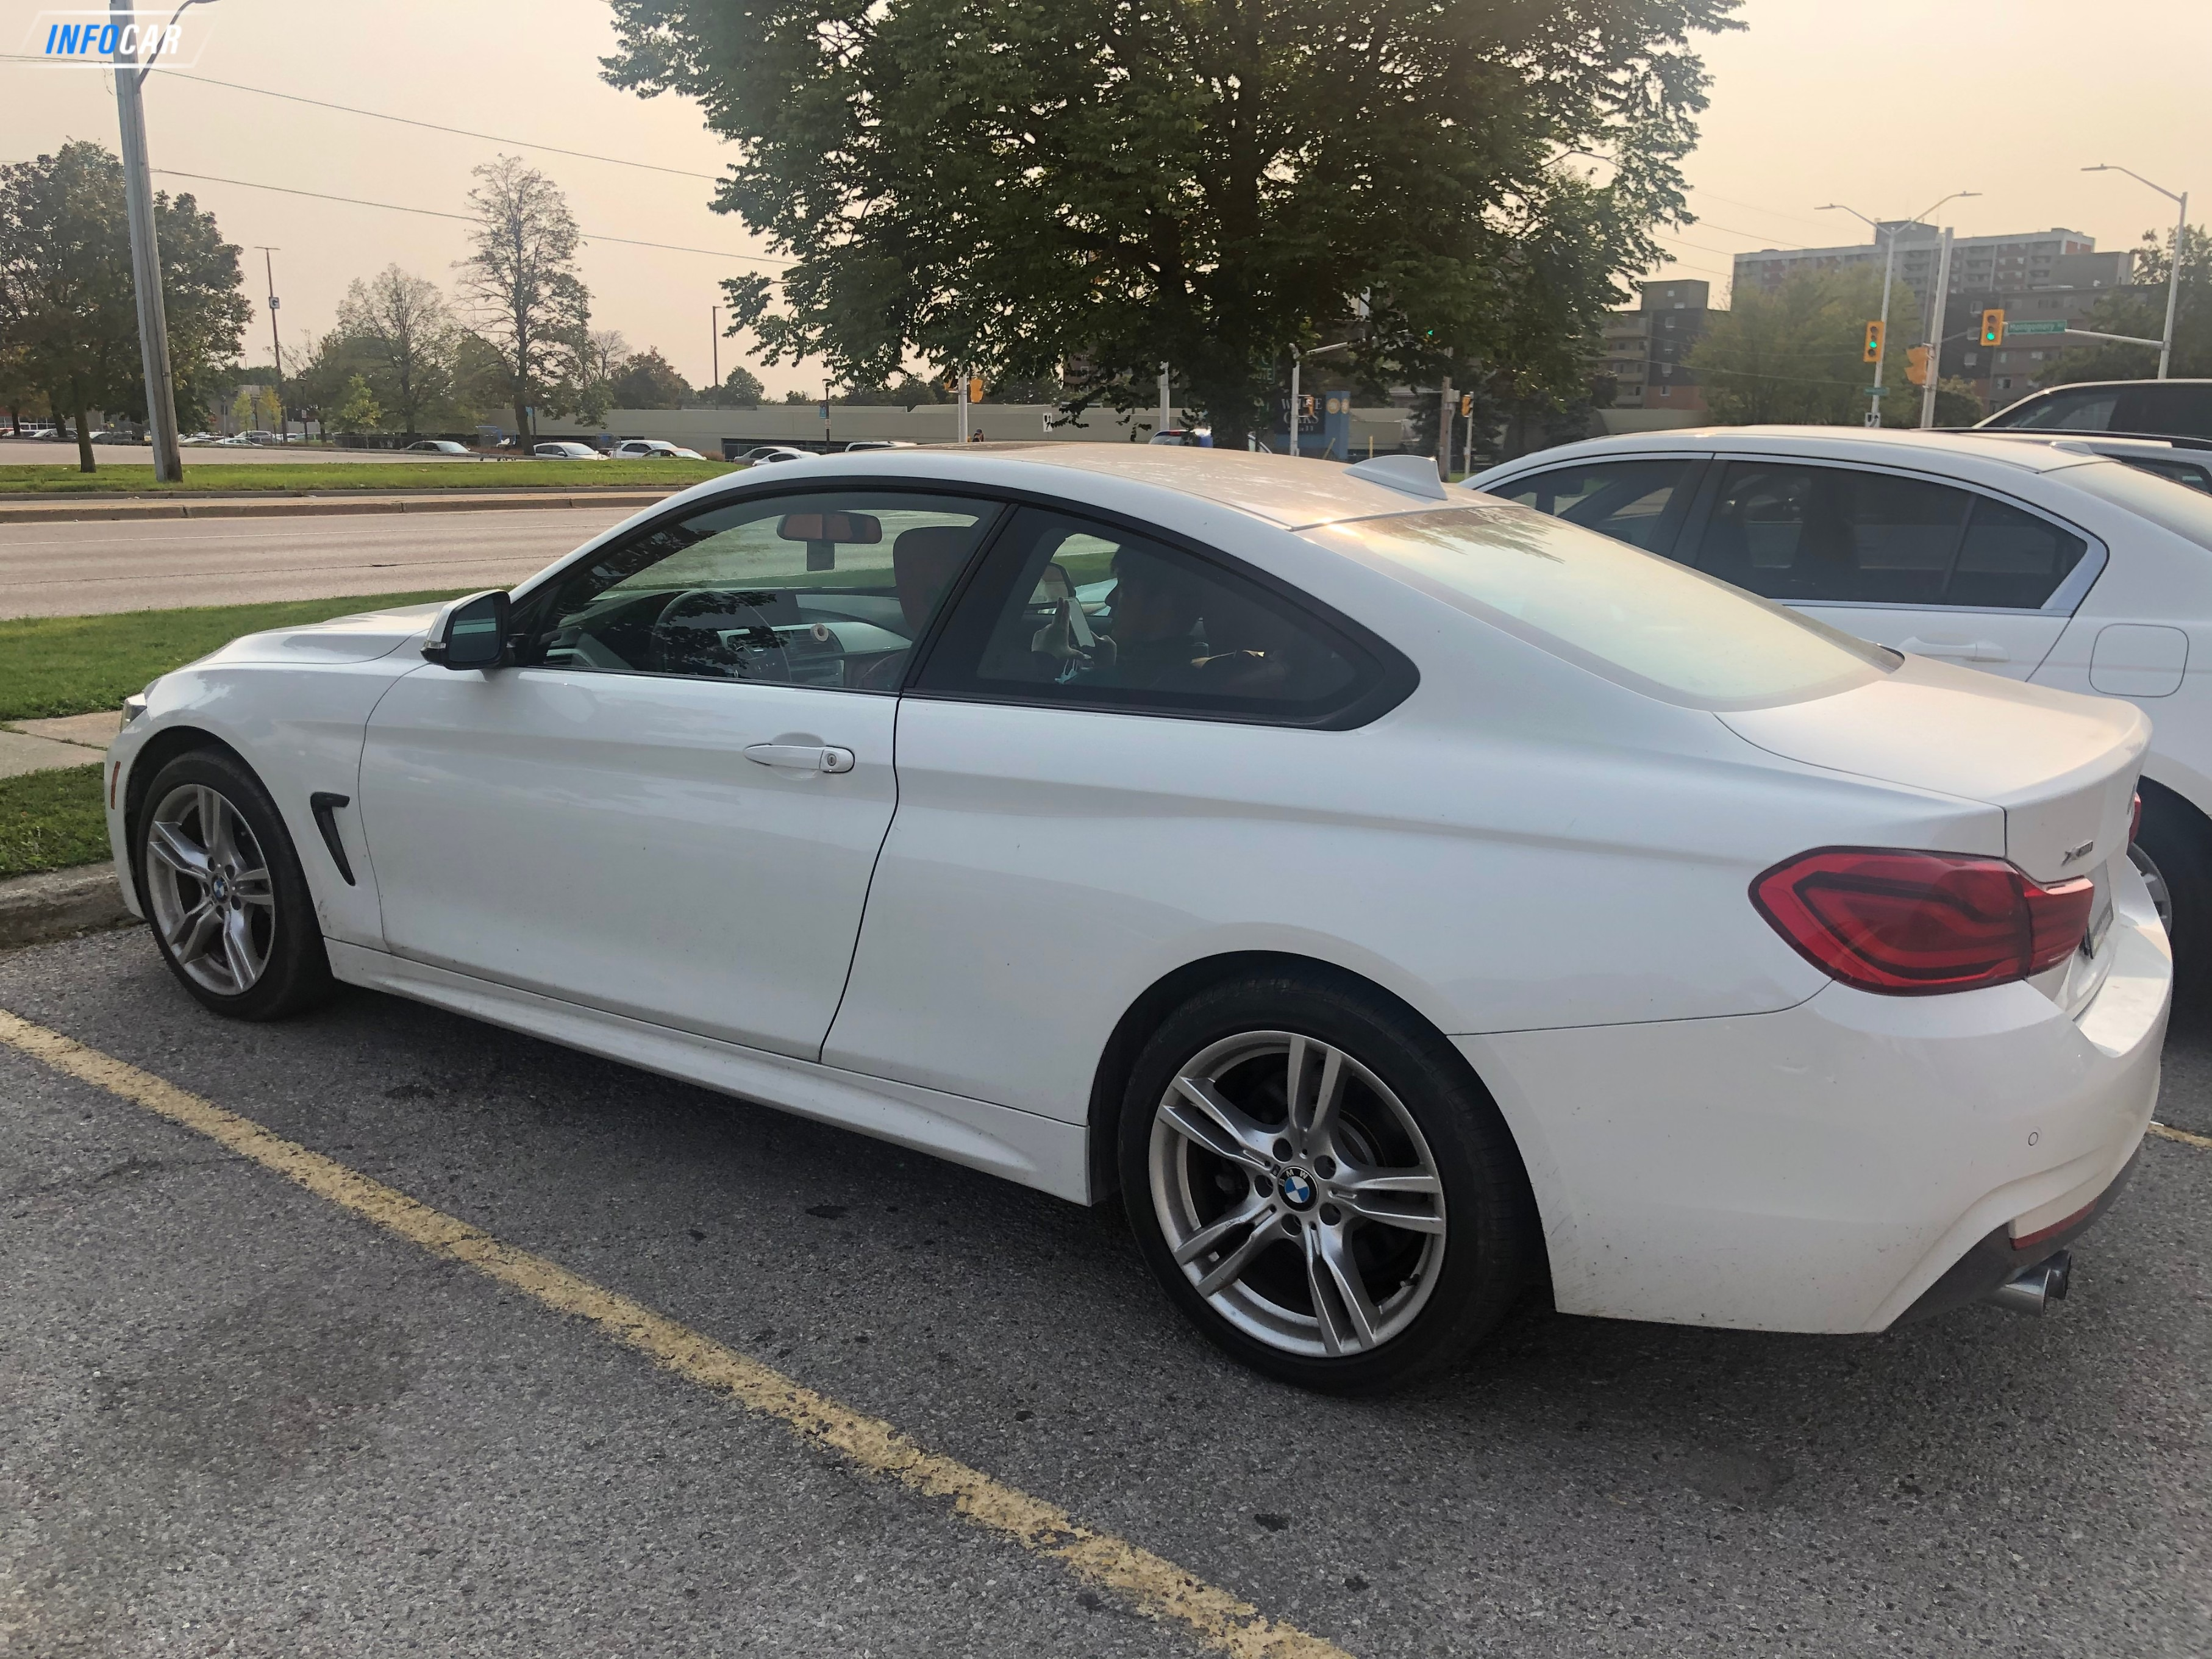 2019 BMW 4-Series 430 COUPE - INFOCAR - Toronto's Most Comprehensive New and Used Auto Trading Platform